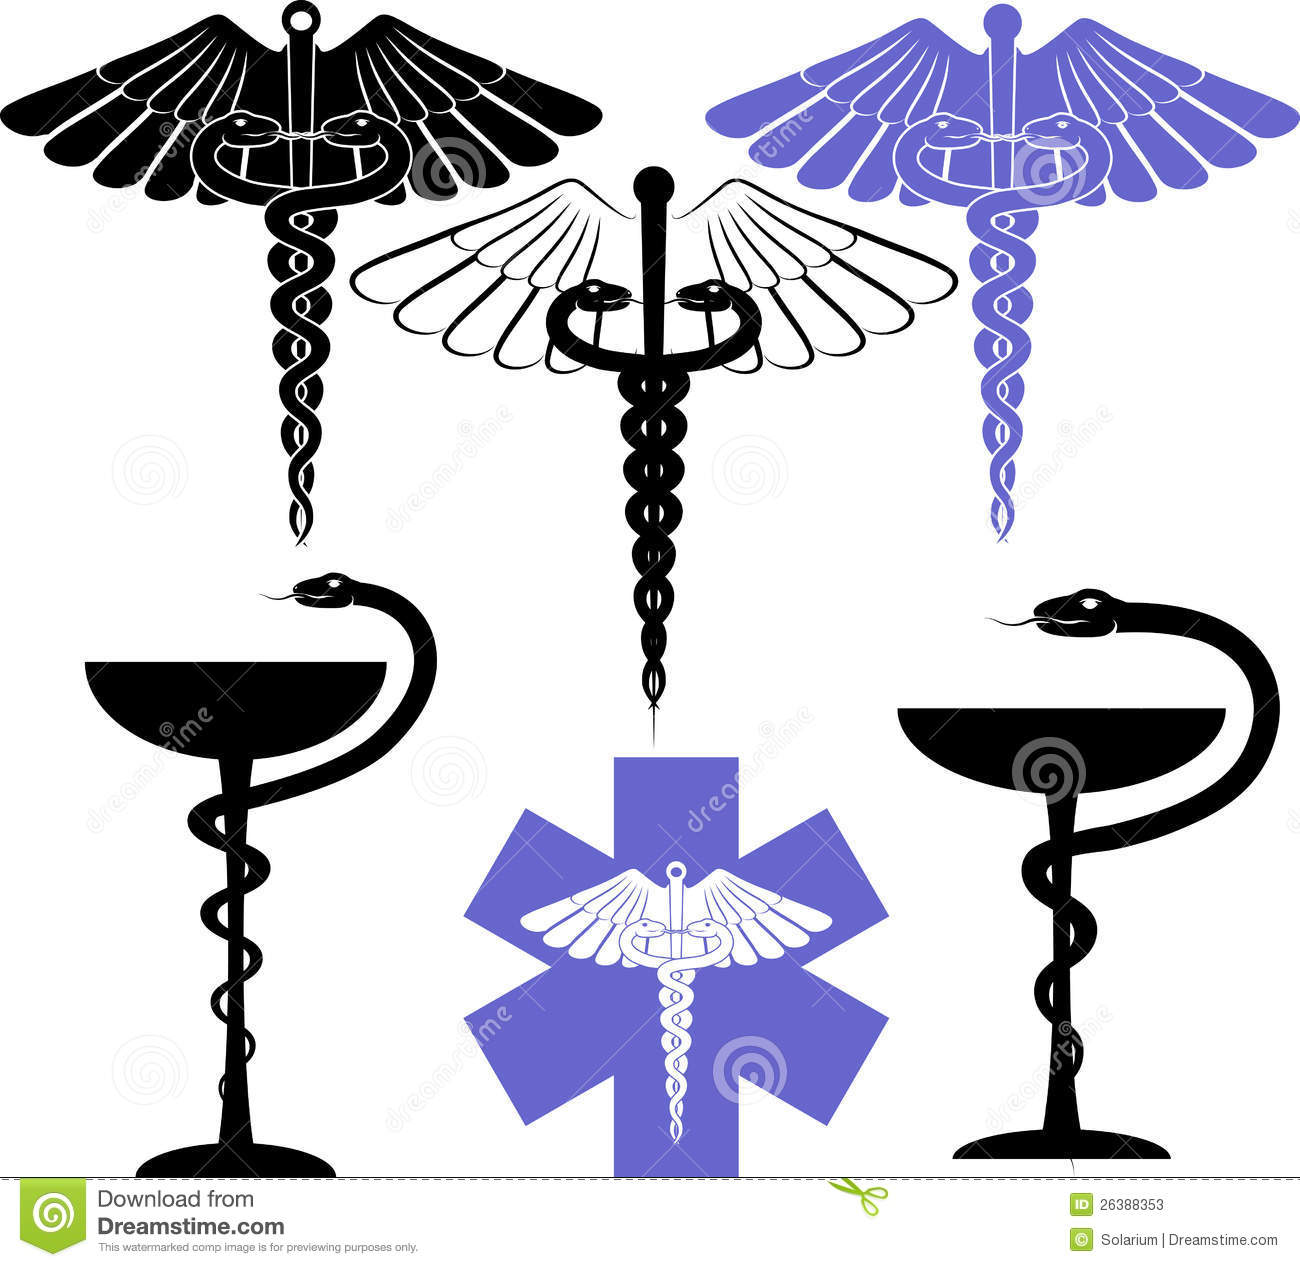 30 Medical Symbol Meaning With With Medical Meaning Symbol